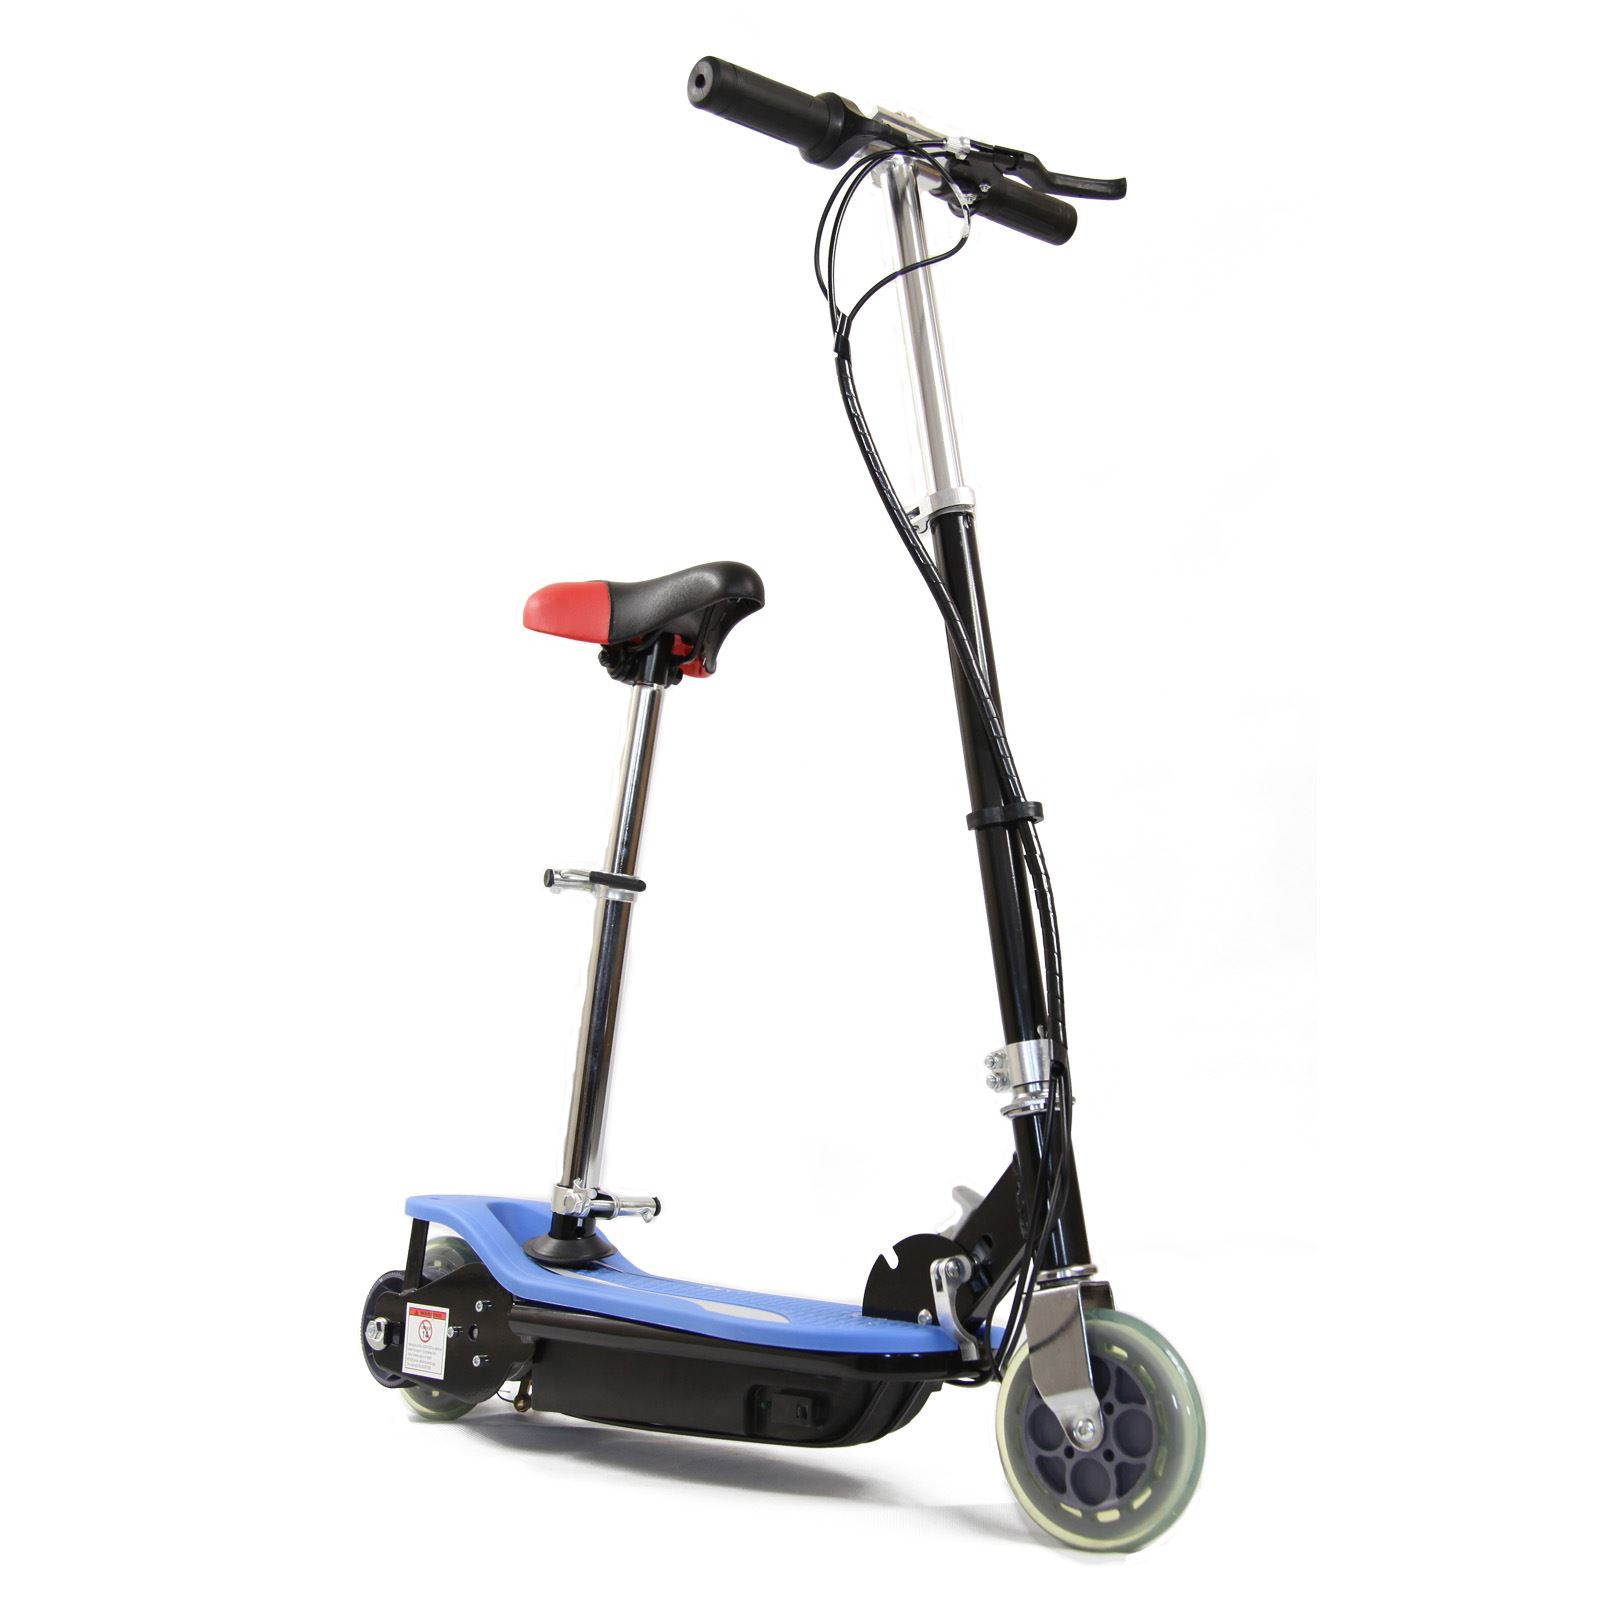 Electric Scooter E Scooter Foldable With Seat 120w Twin Battery Ride On Toys